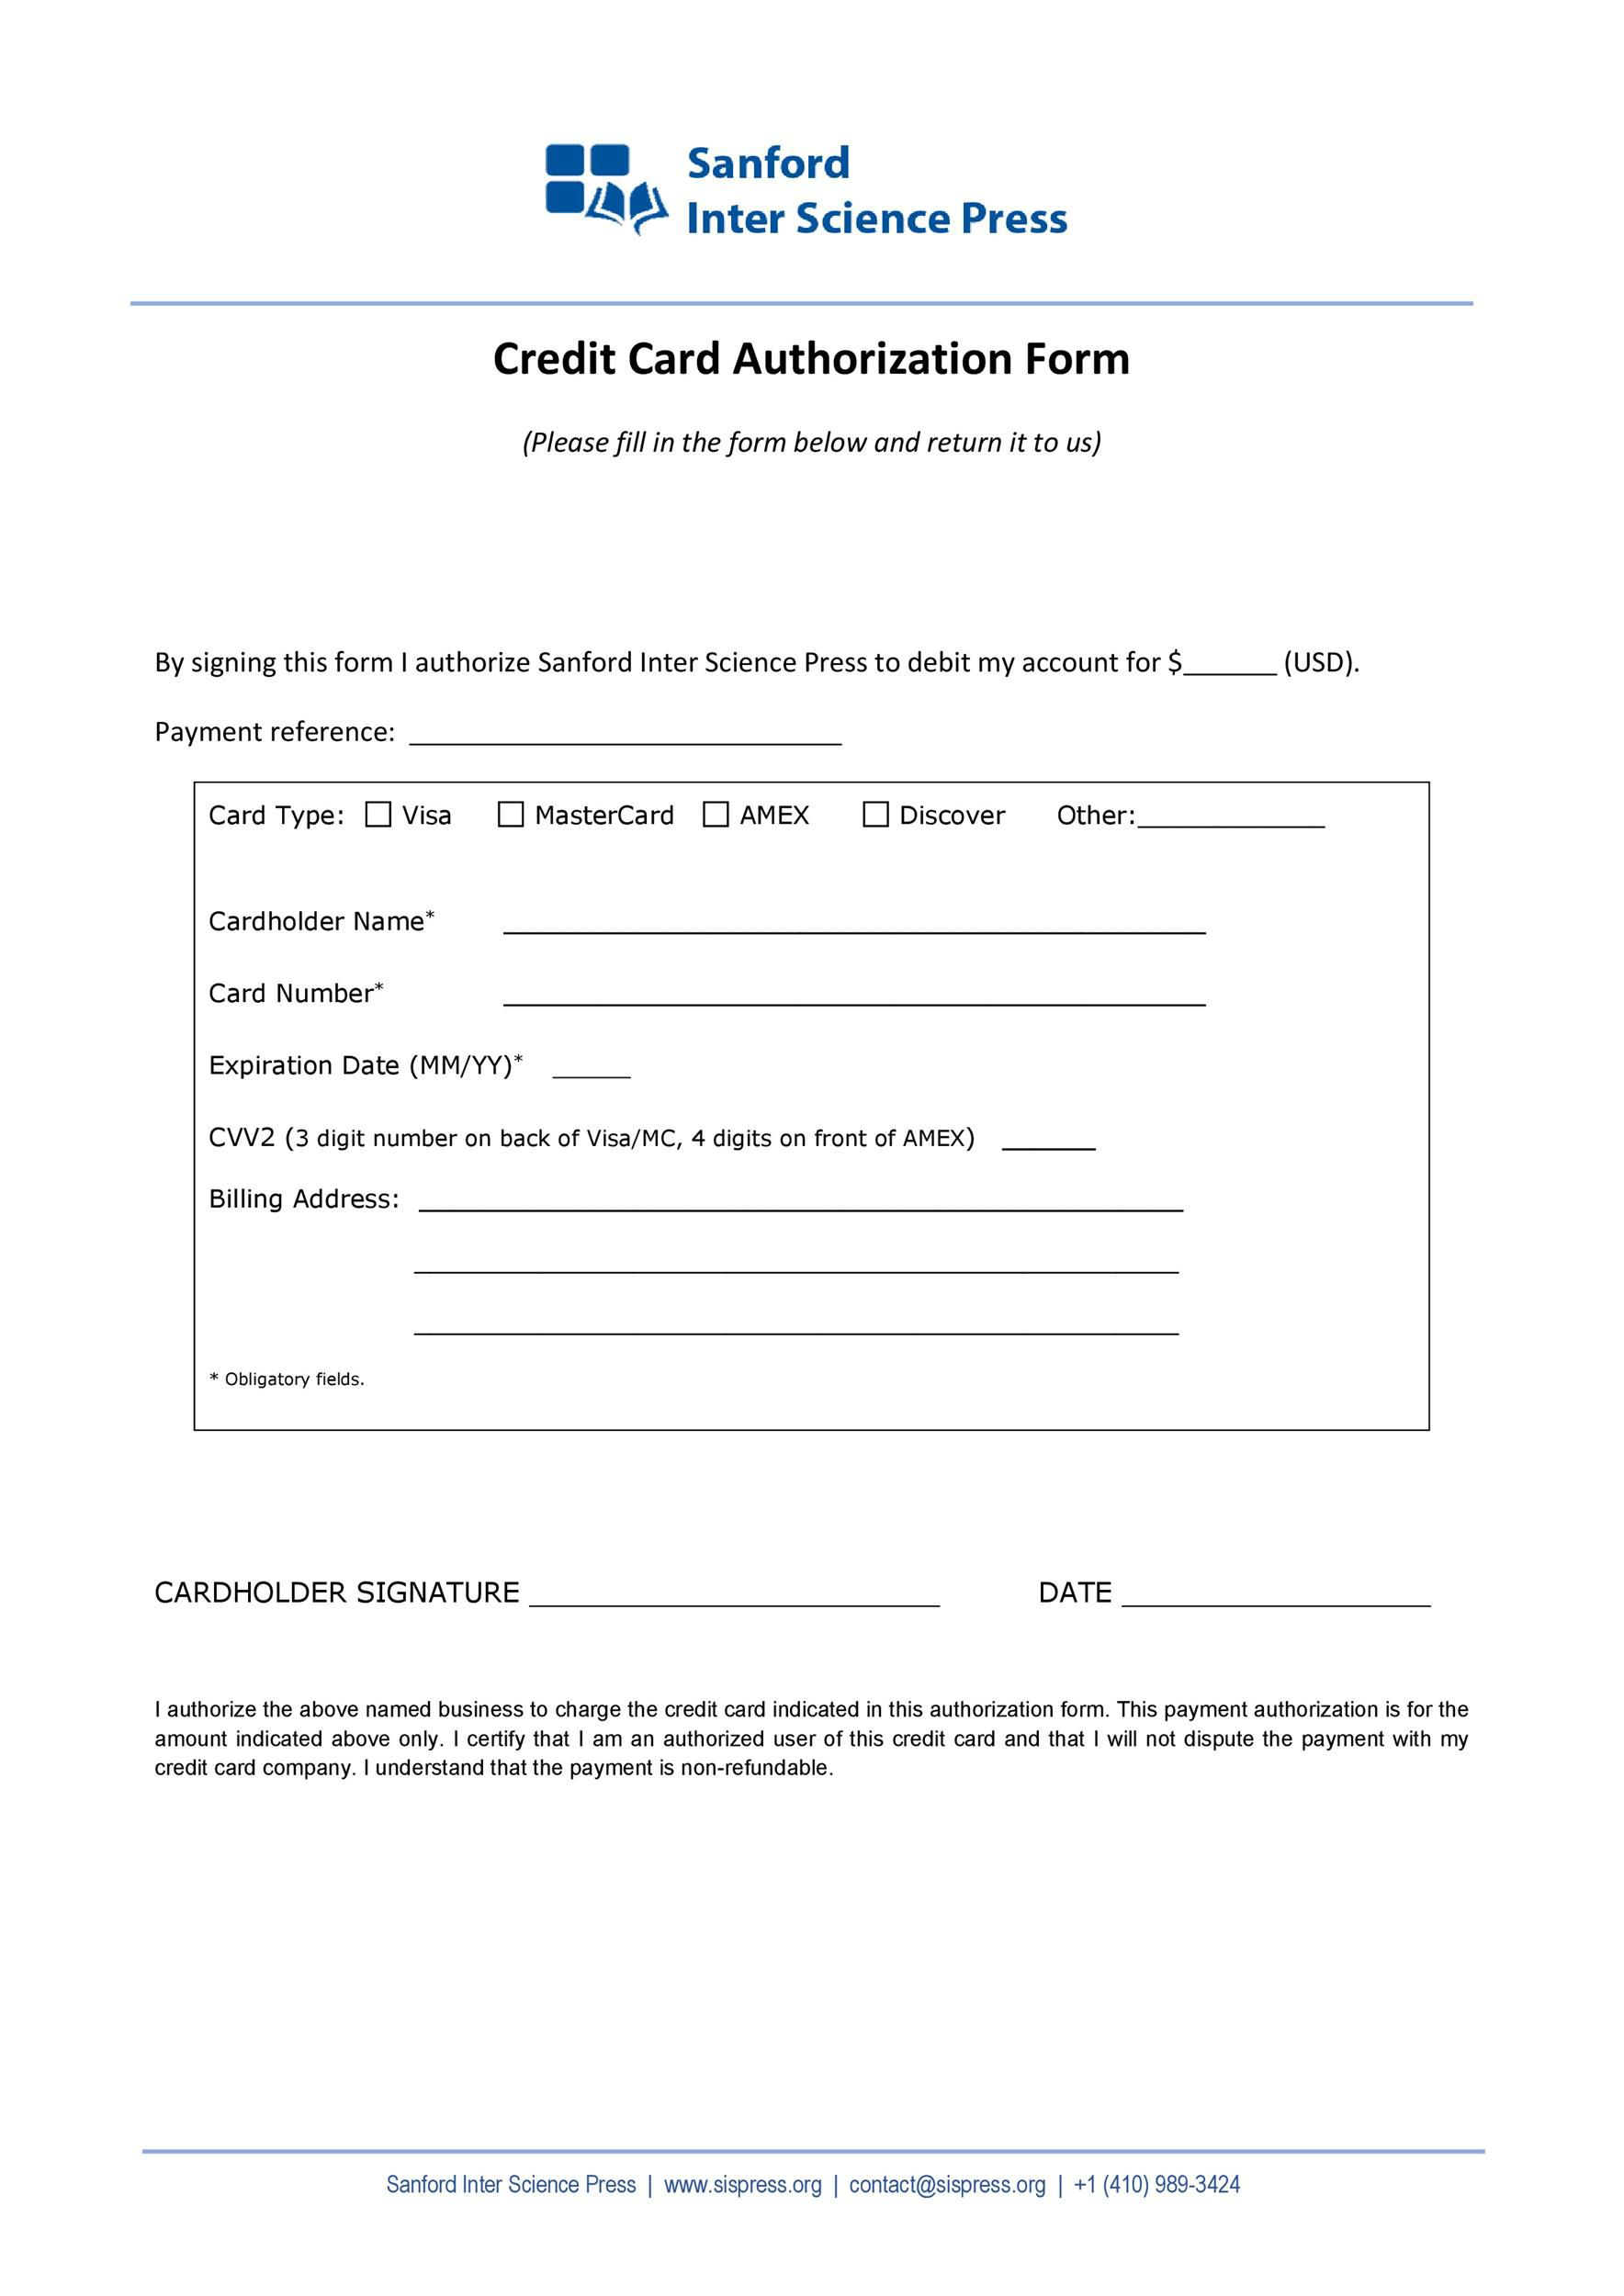 004 Frightening Credit Card Payment Form Template Pdf Design  AuthorizationFull